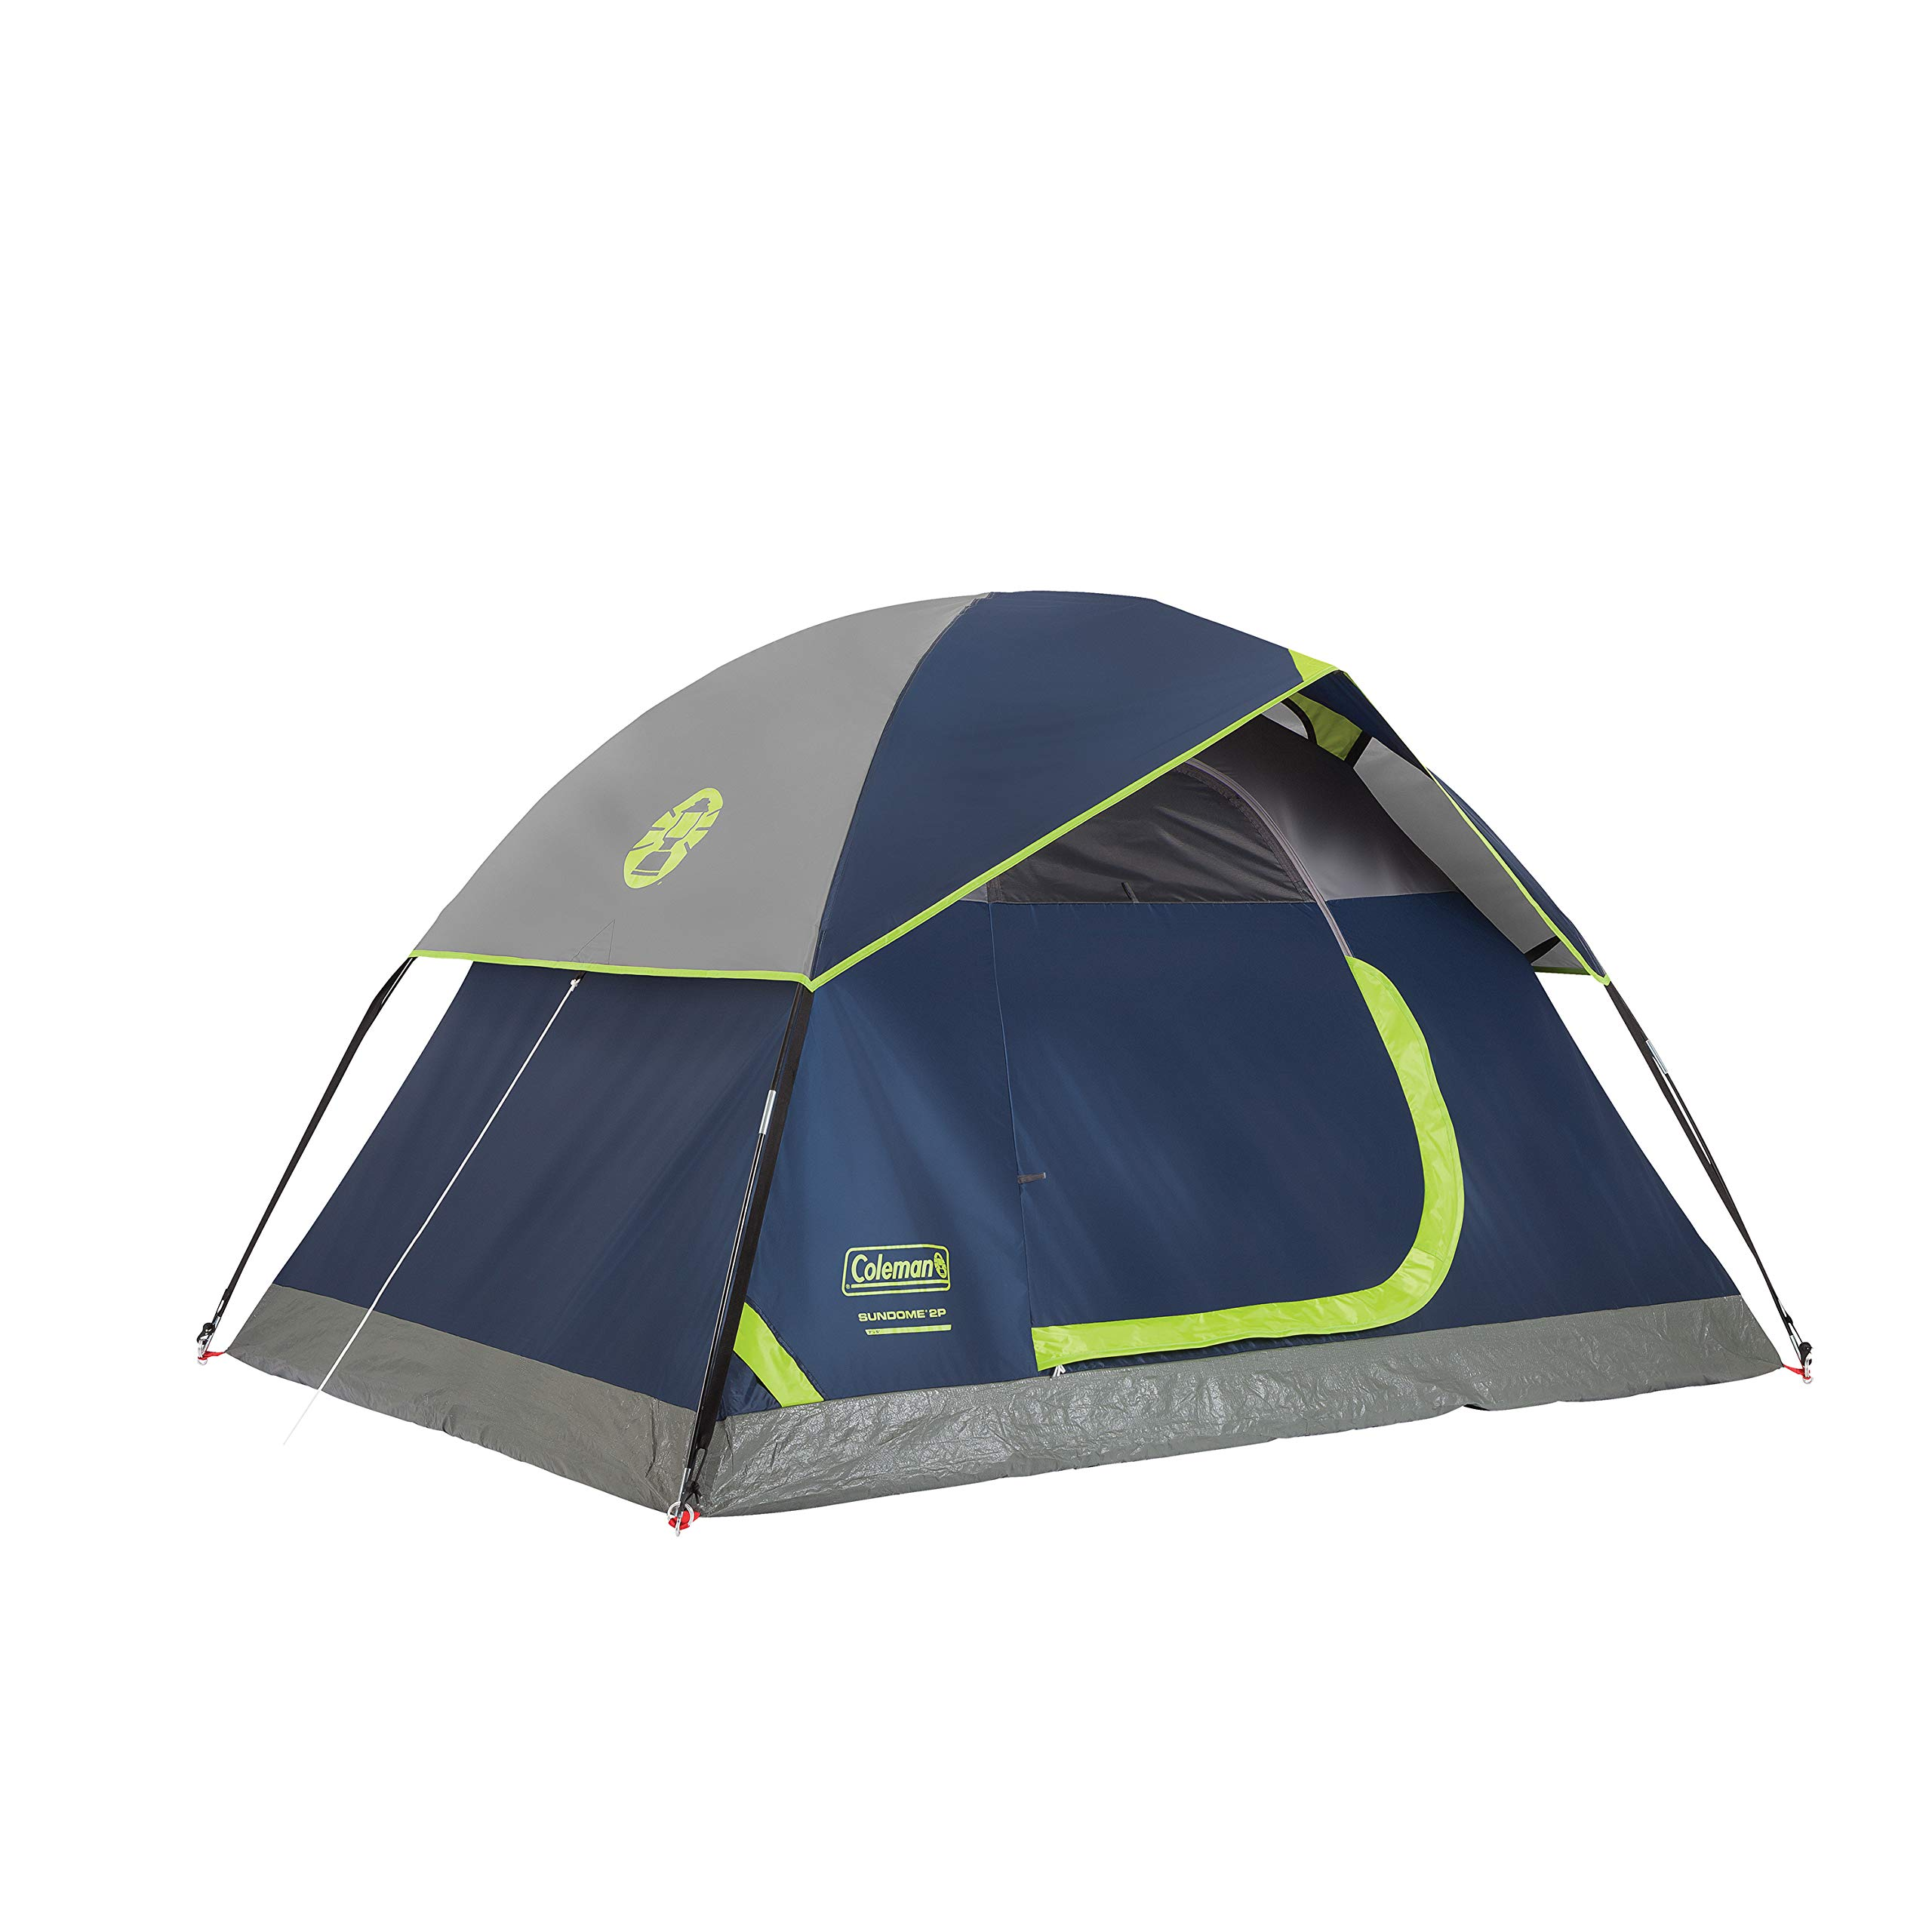 Best Rated in Family Camping Tents & Helpful Customer Reviews